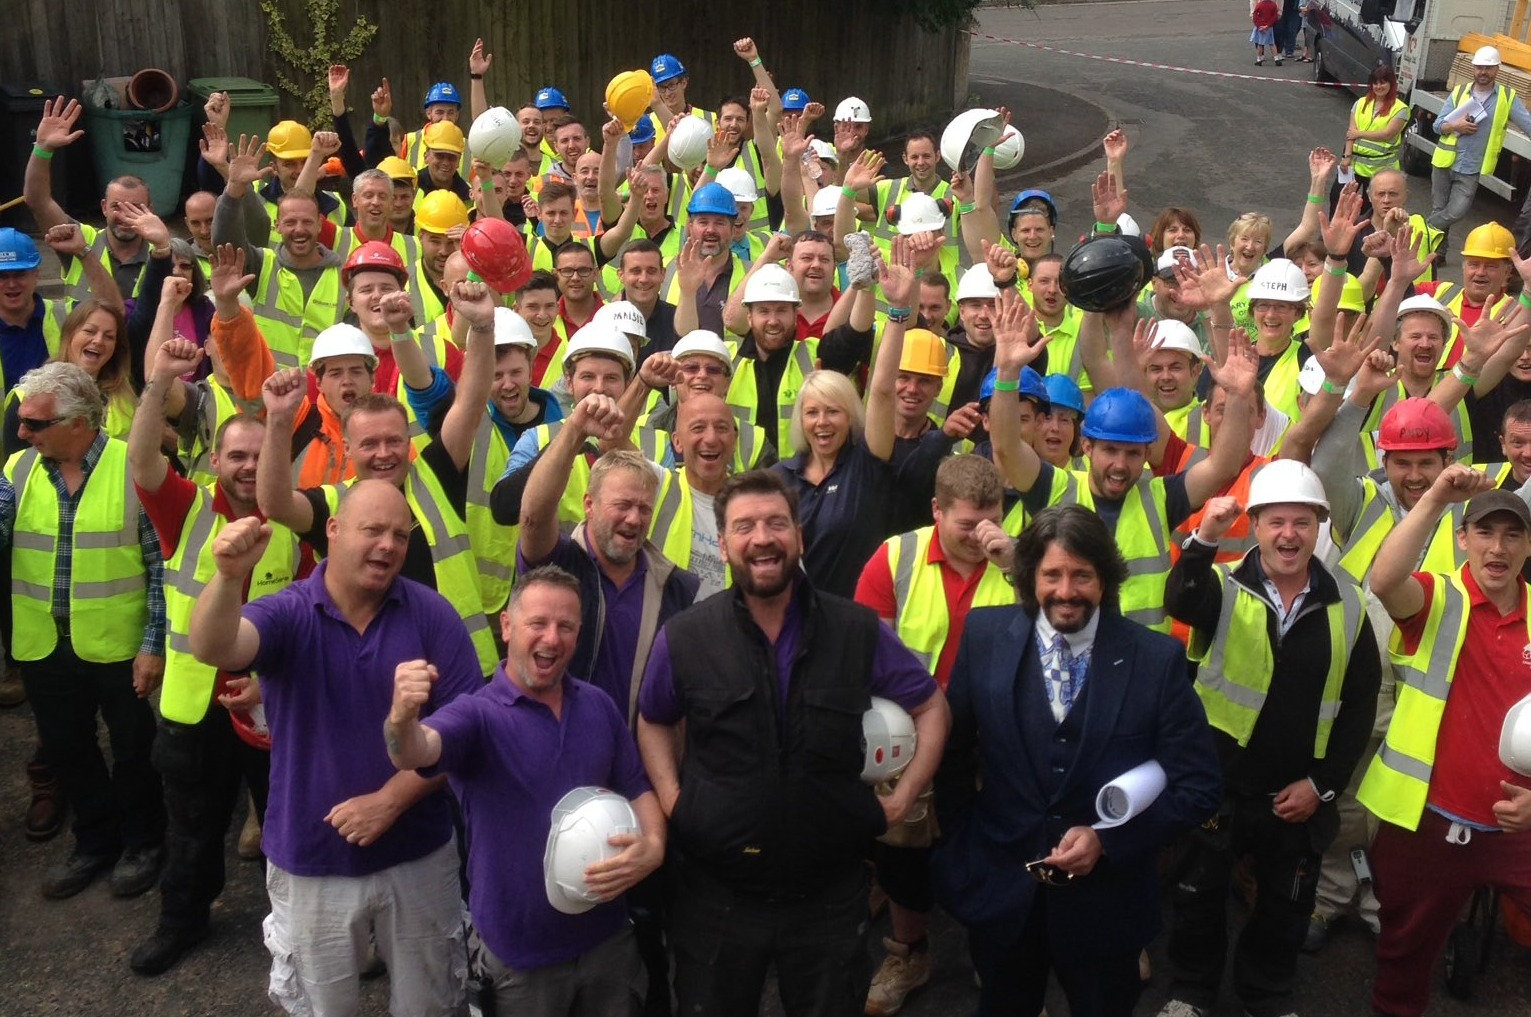 The episode of BBC television programme DIY SOS that was filmed at Ben Wernham's house in Avening will air on October 3